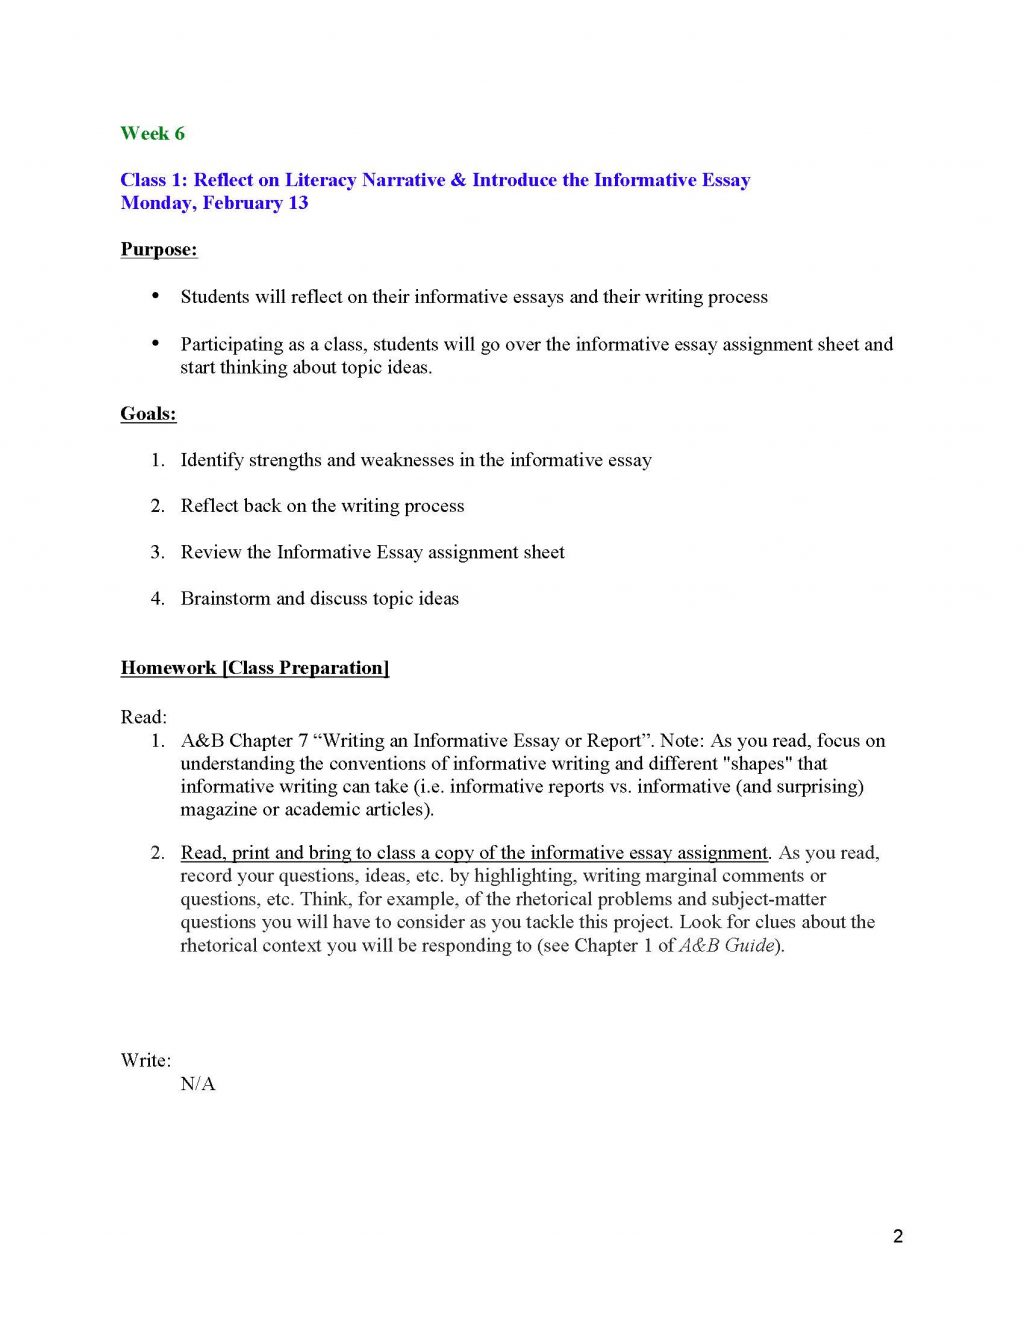 018 How To Write Informative Essay Templates For High School Unit 2 Plans Instructor Copy Page 02 Ideas Their Eyes Were Watching God Topics 1024x1325 Dreaded A Introduction Good Thesis An Full